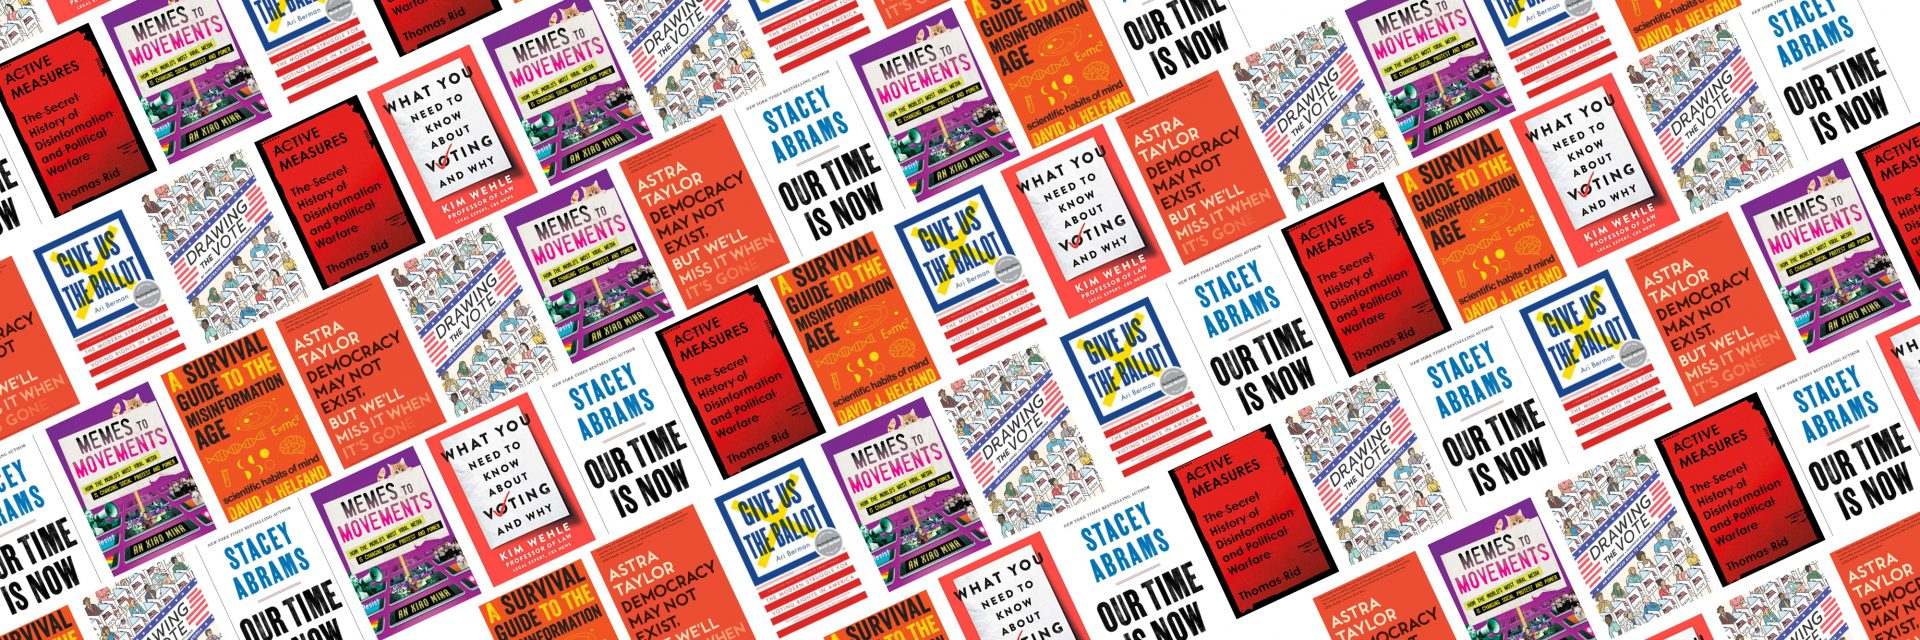 What To Expect When You're Electing: A Reading List book covers